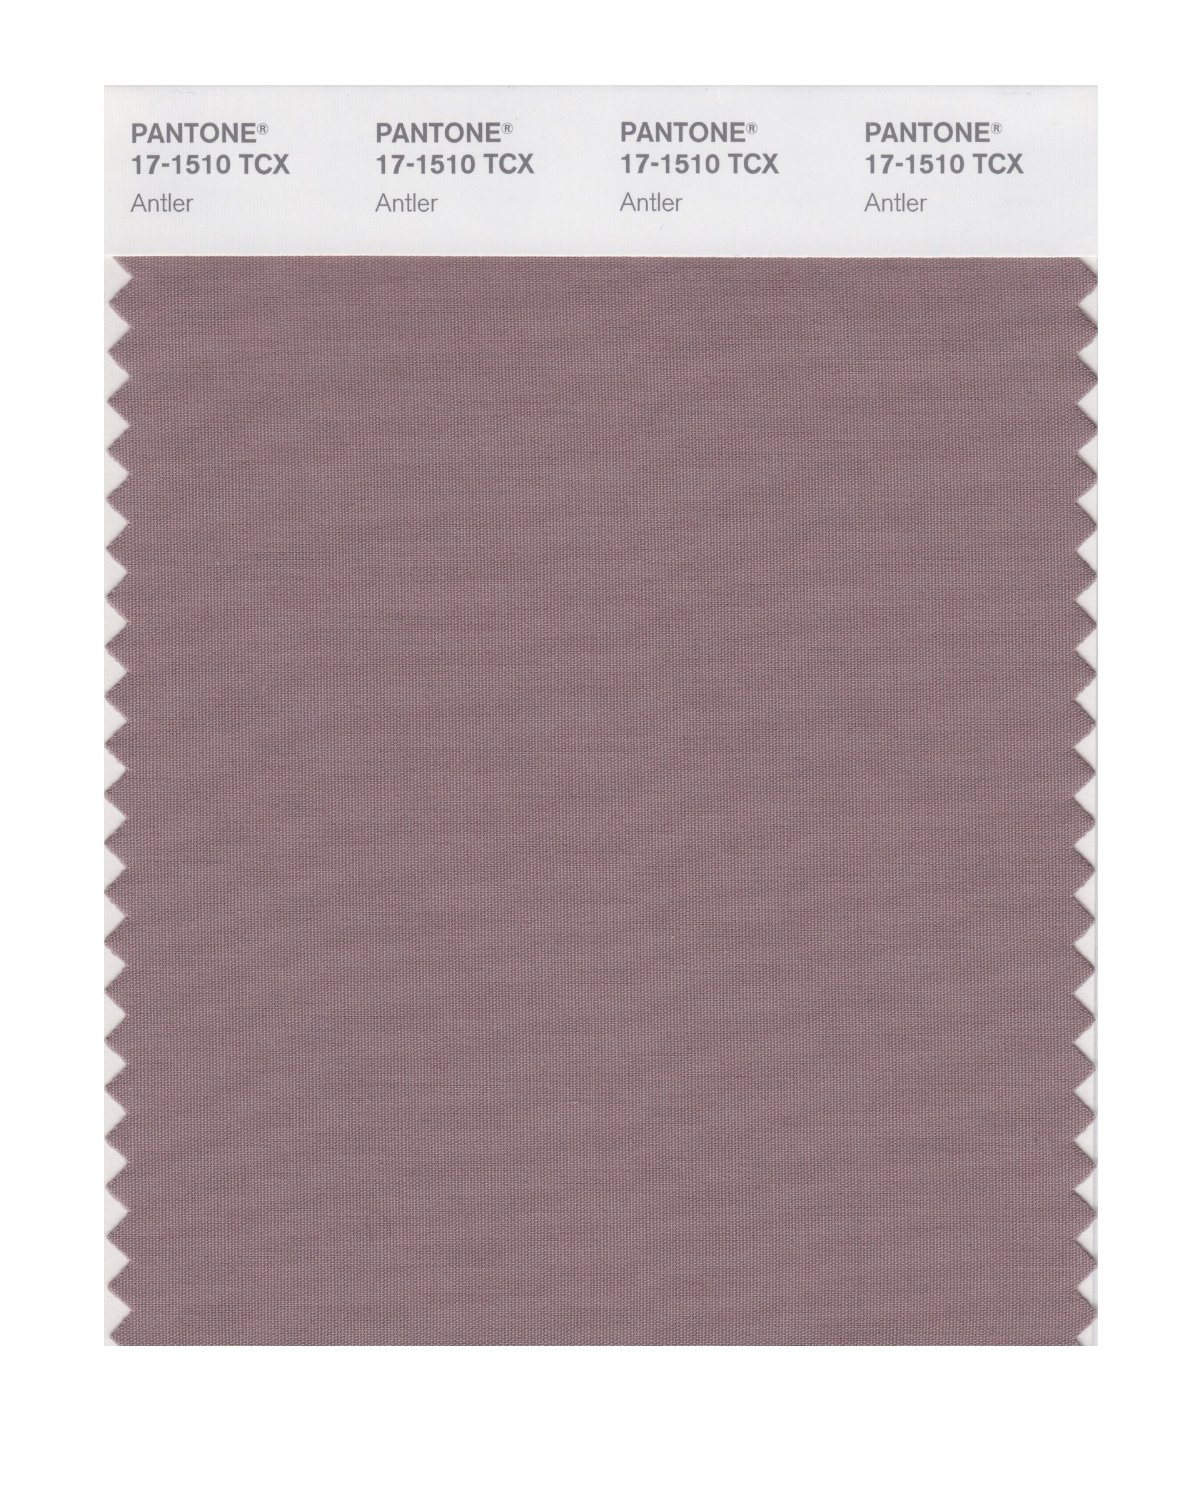 Pantone Smart Swatch 17-1510 Antler